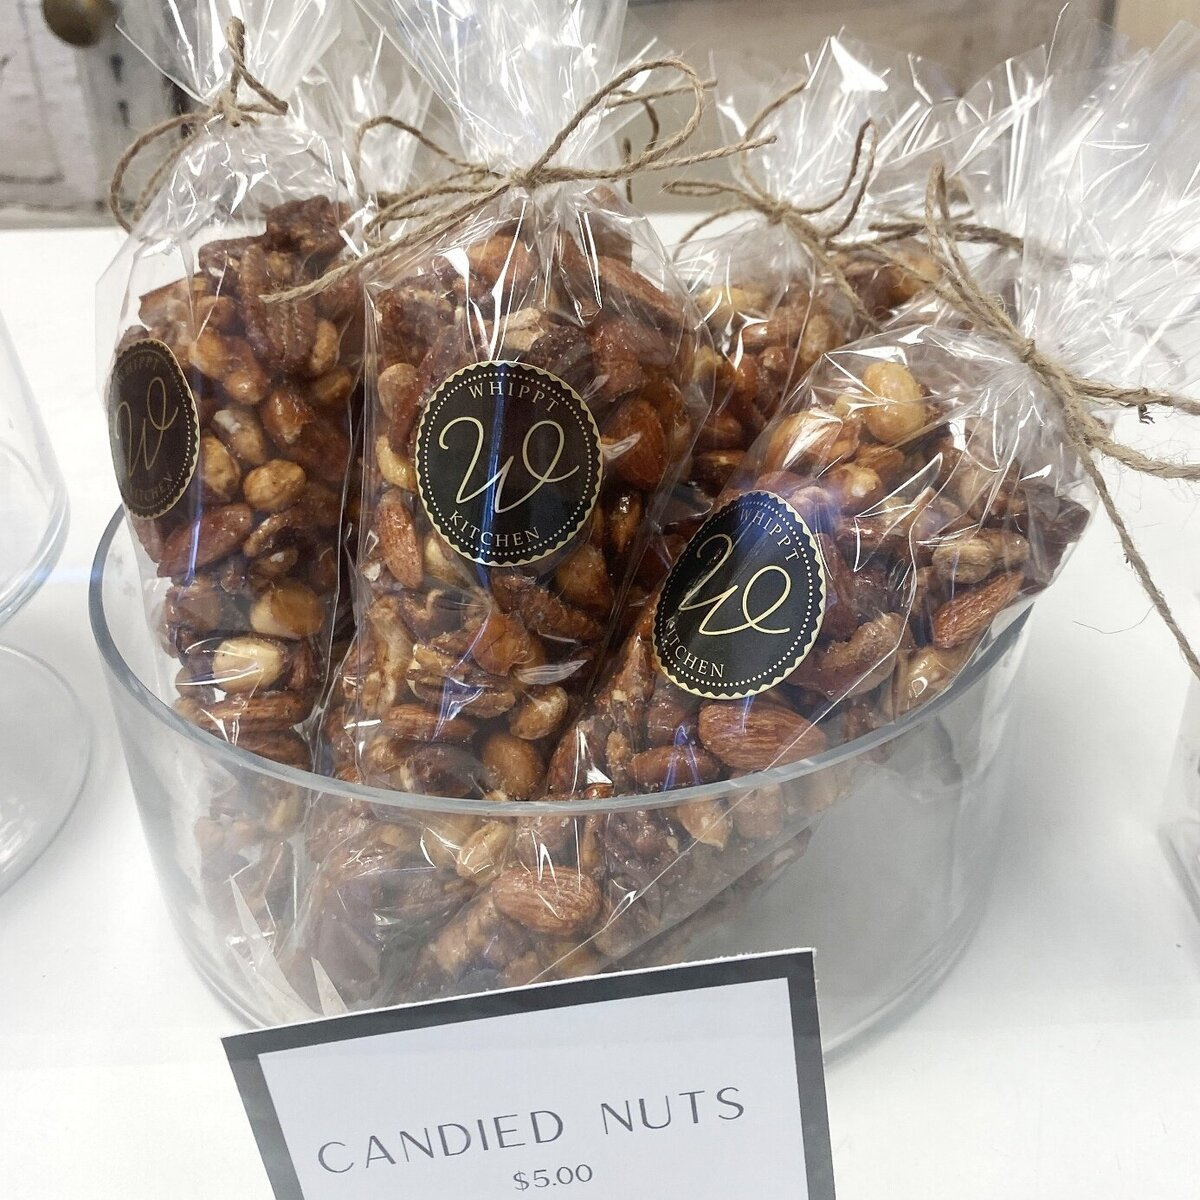 Whippt Kitchen candied nuts